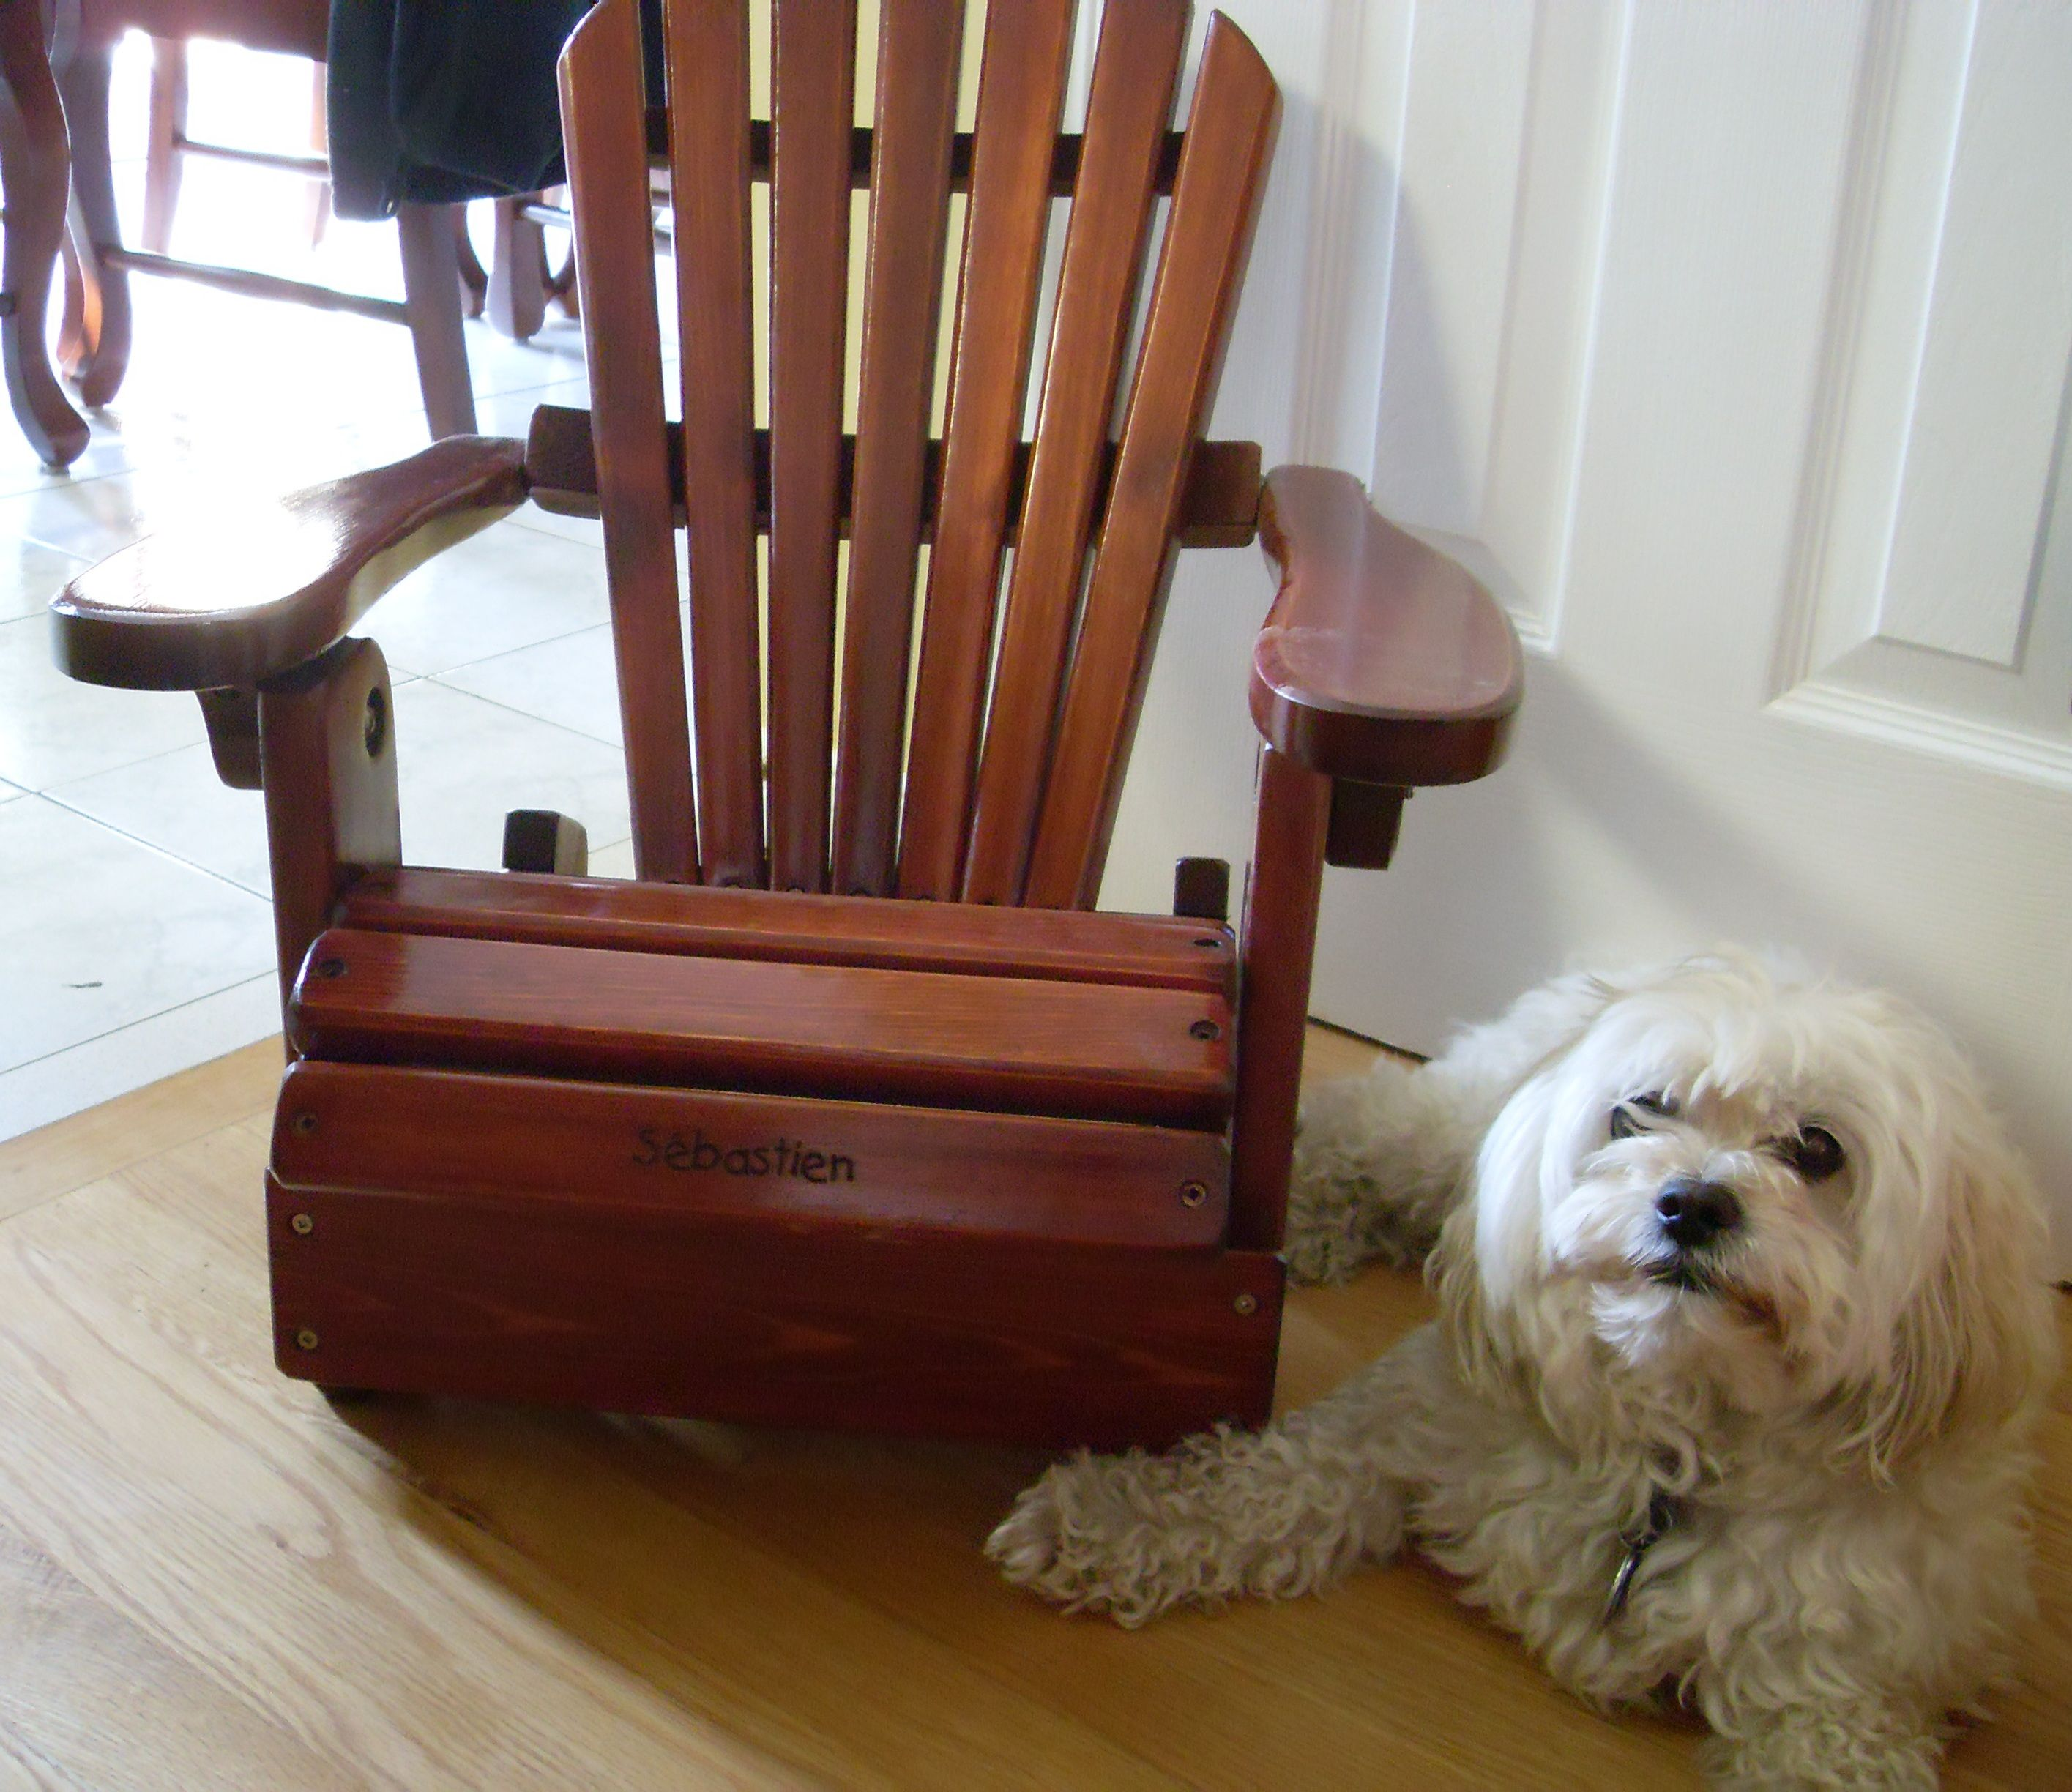 Personalized Childrenu0027s Adirondack Chairs Are A Great And Original Gift  That Can Be Customized With The